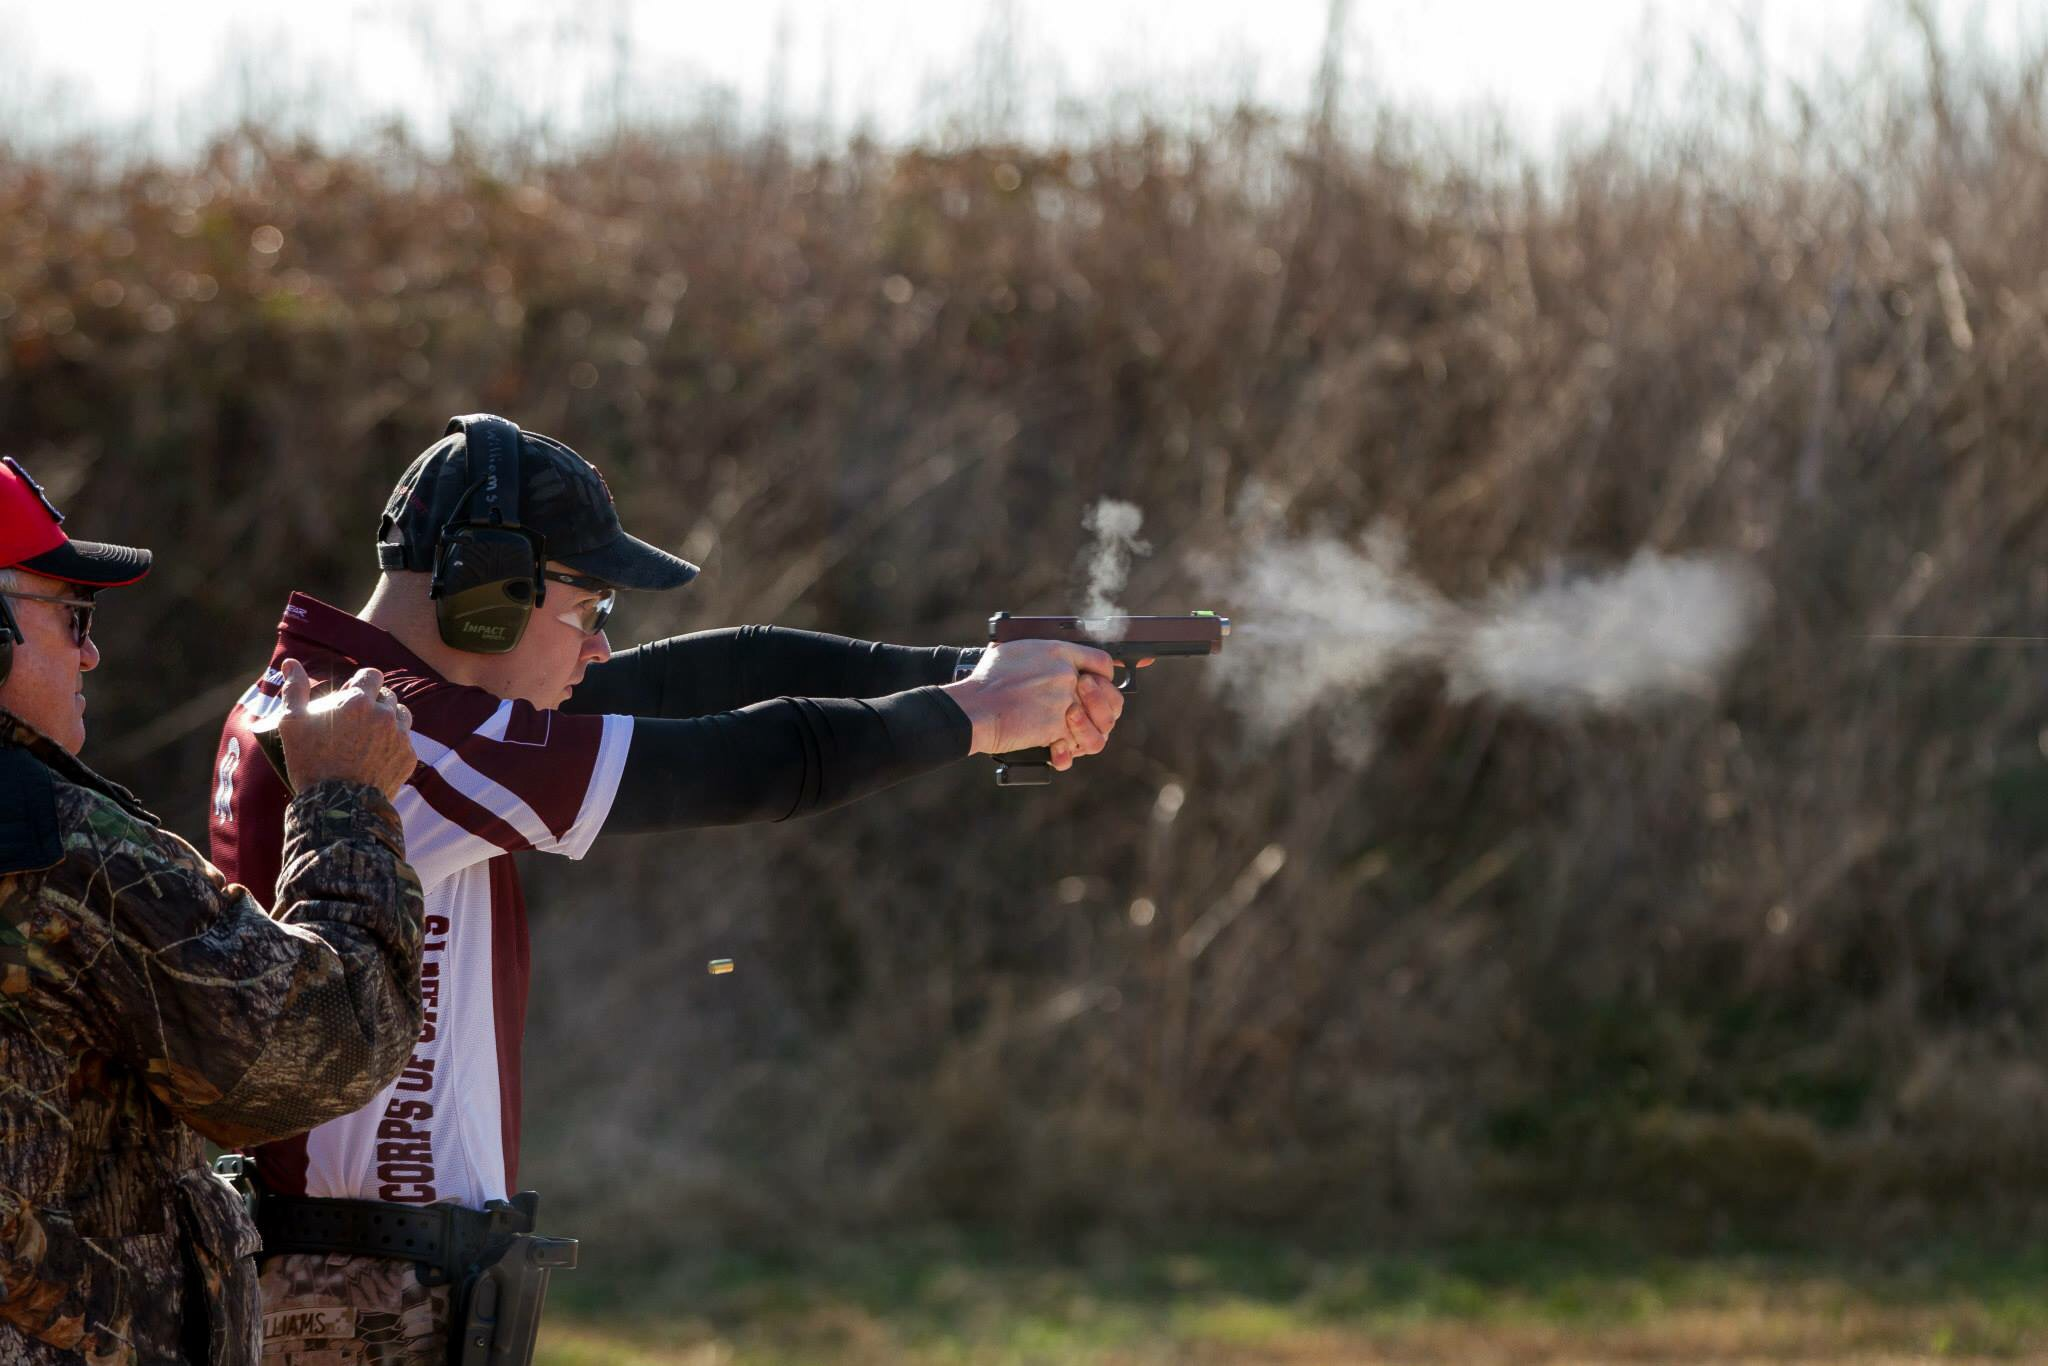 Shooting Sports – Greg Petrey | North Richland Hills, Texas